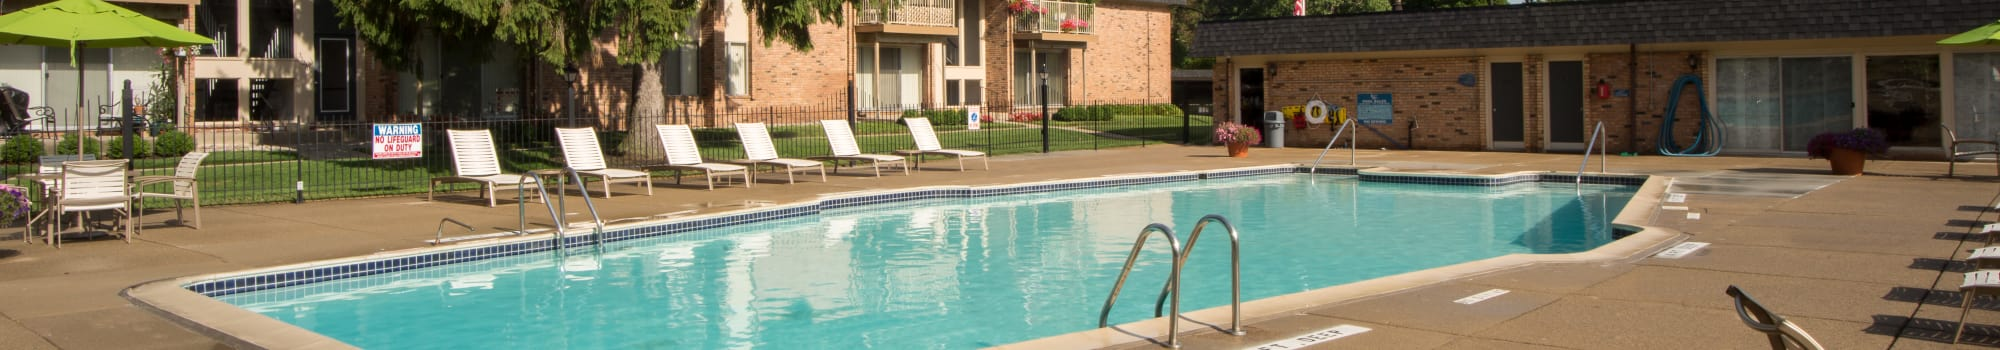 Pet friendly at Kensington Manor Apartments in Farmington, Michigan